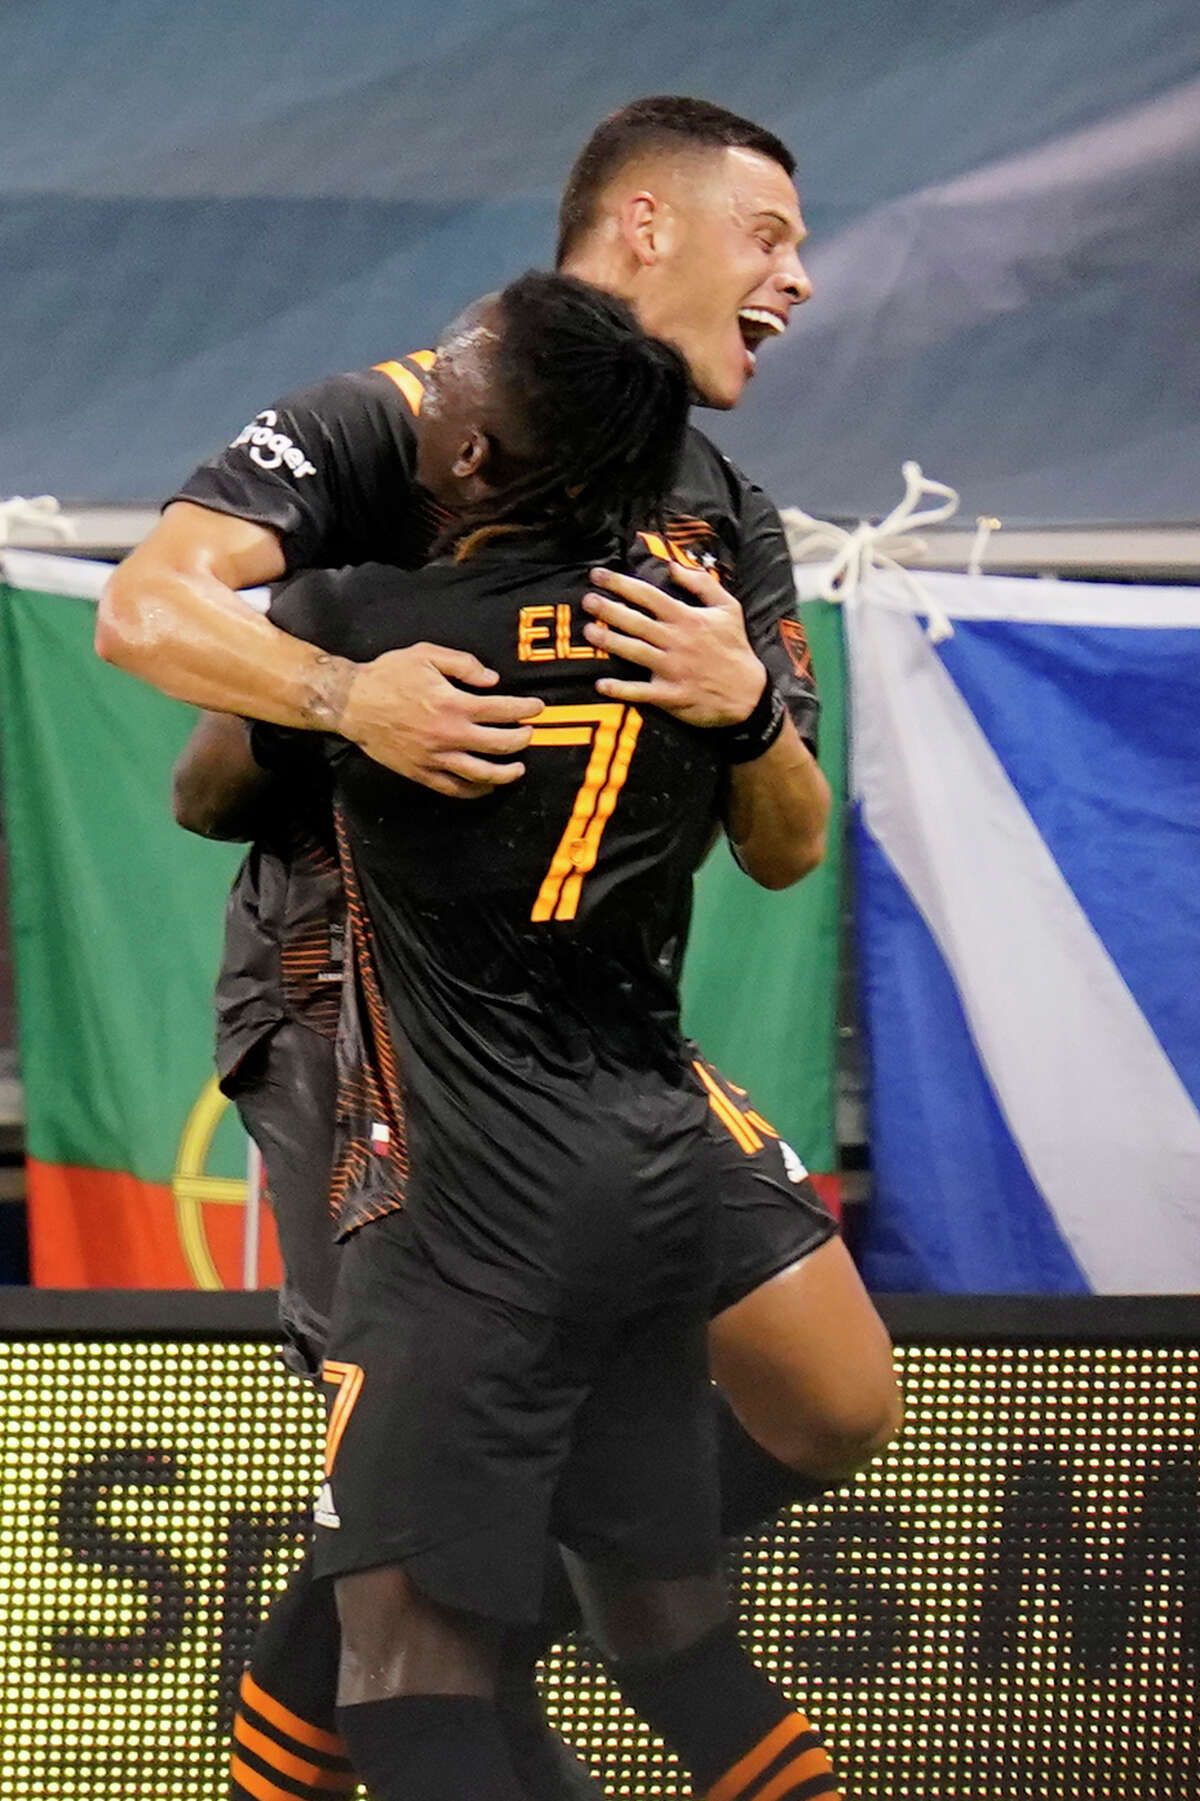 Houston Dynamo forward Christian Ramirez, back, celebrate his goal with teammate Alberth Elis (7) during the first half of an MLS soccer match against Sporting Kansas City in Kansas City, Kan., Tuesday, Aug. 25, 2020. (AP Photo/Orlin Wagner)